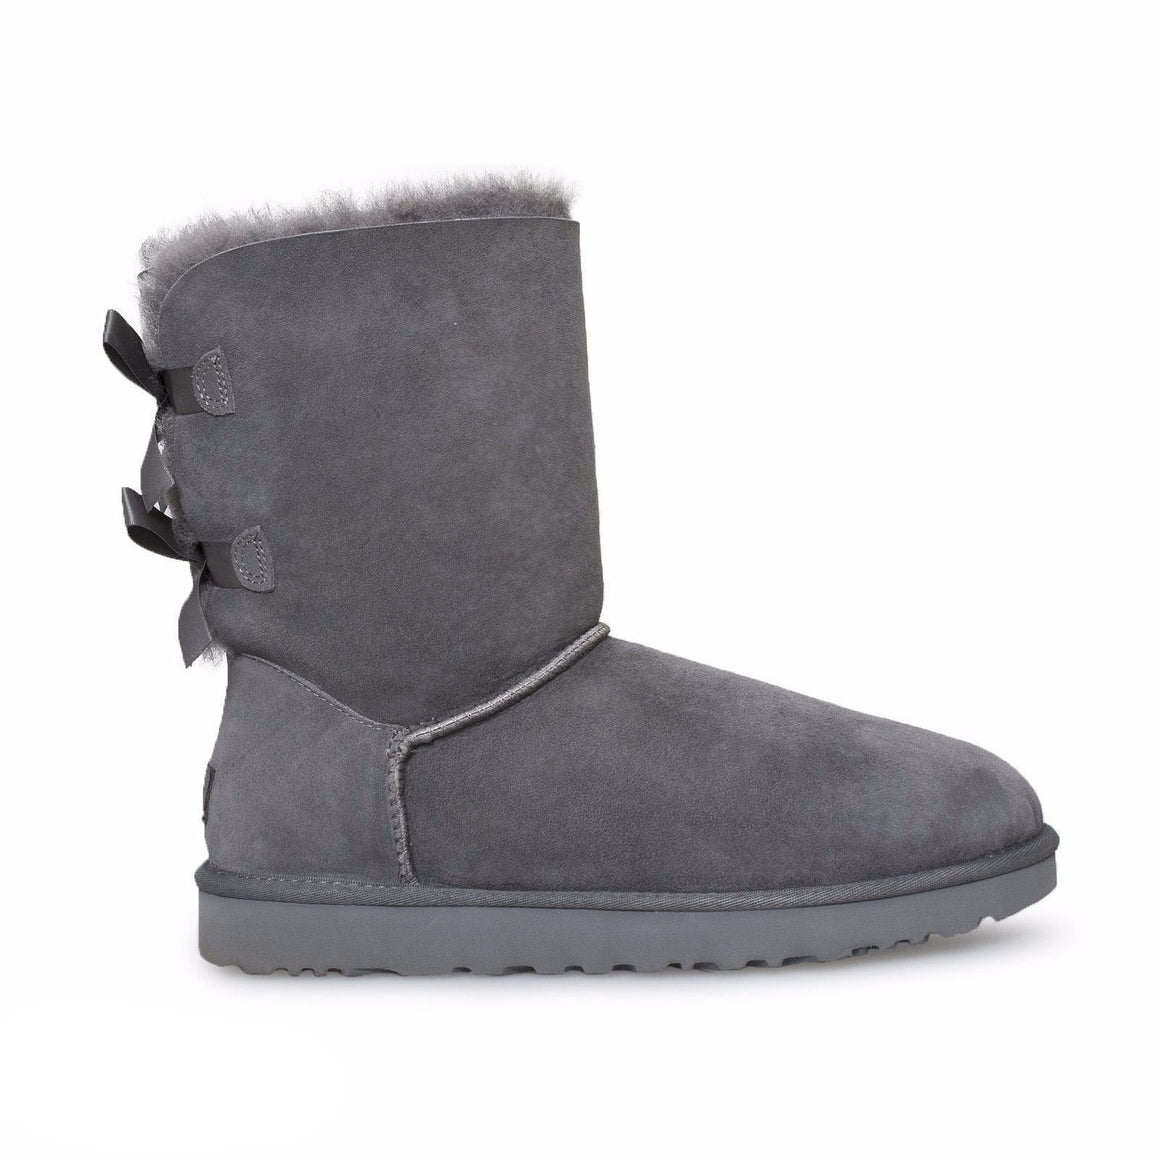 UGG Bailey Bow II Grey Boots - Women's